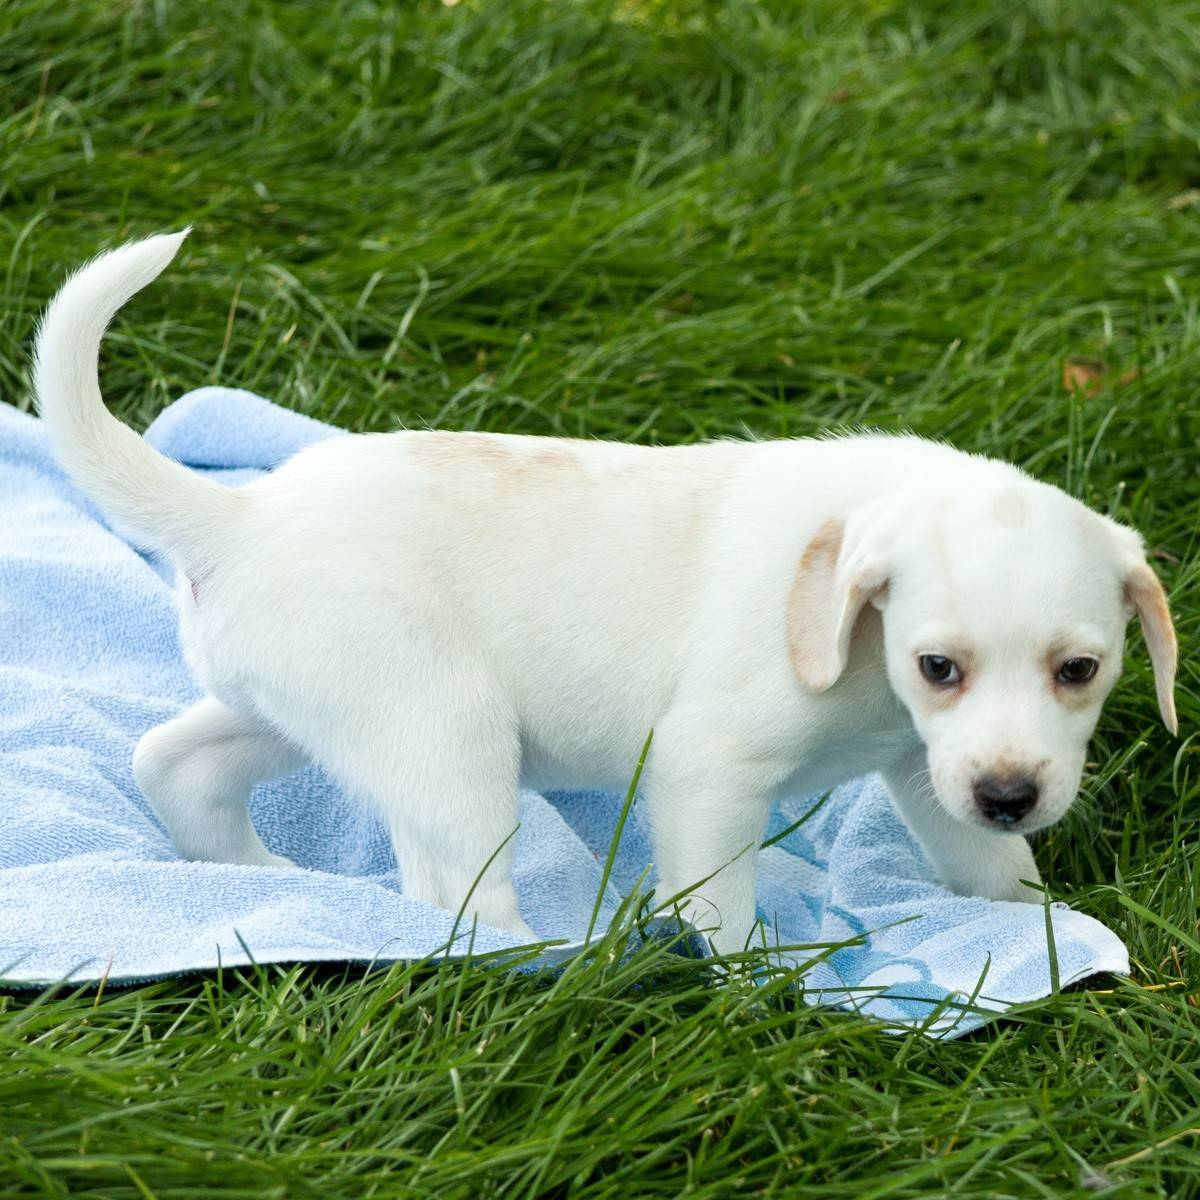 Justine is a female, 10-week-old beagle mix, who weighs about four pounds.